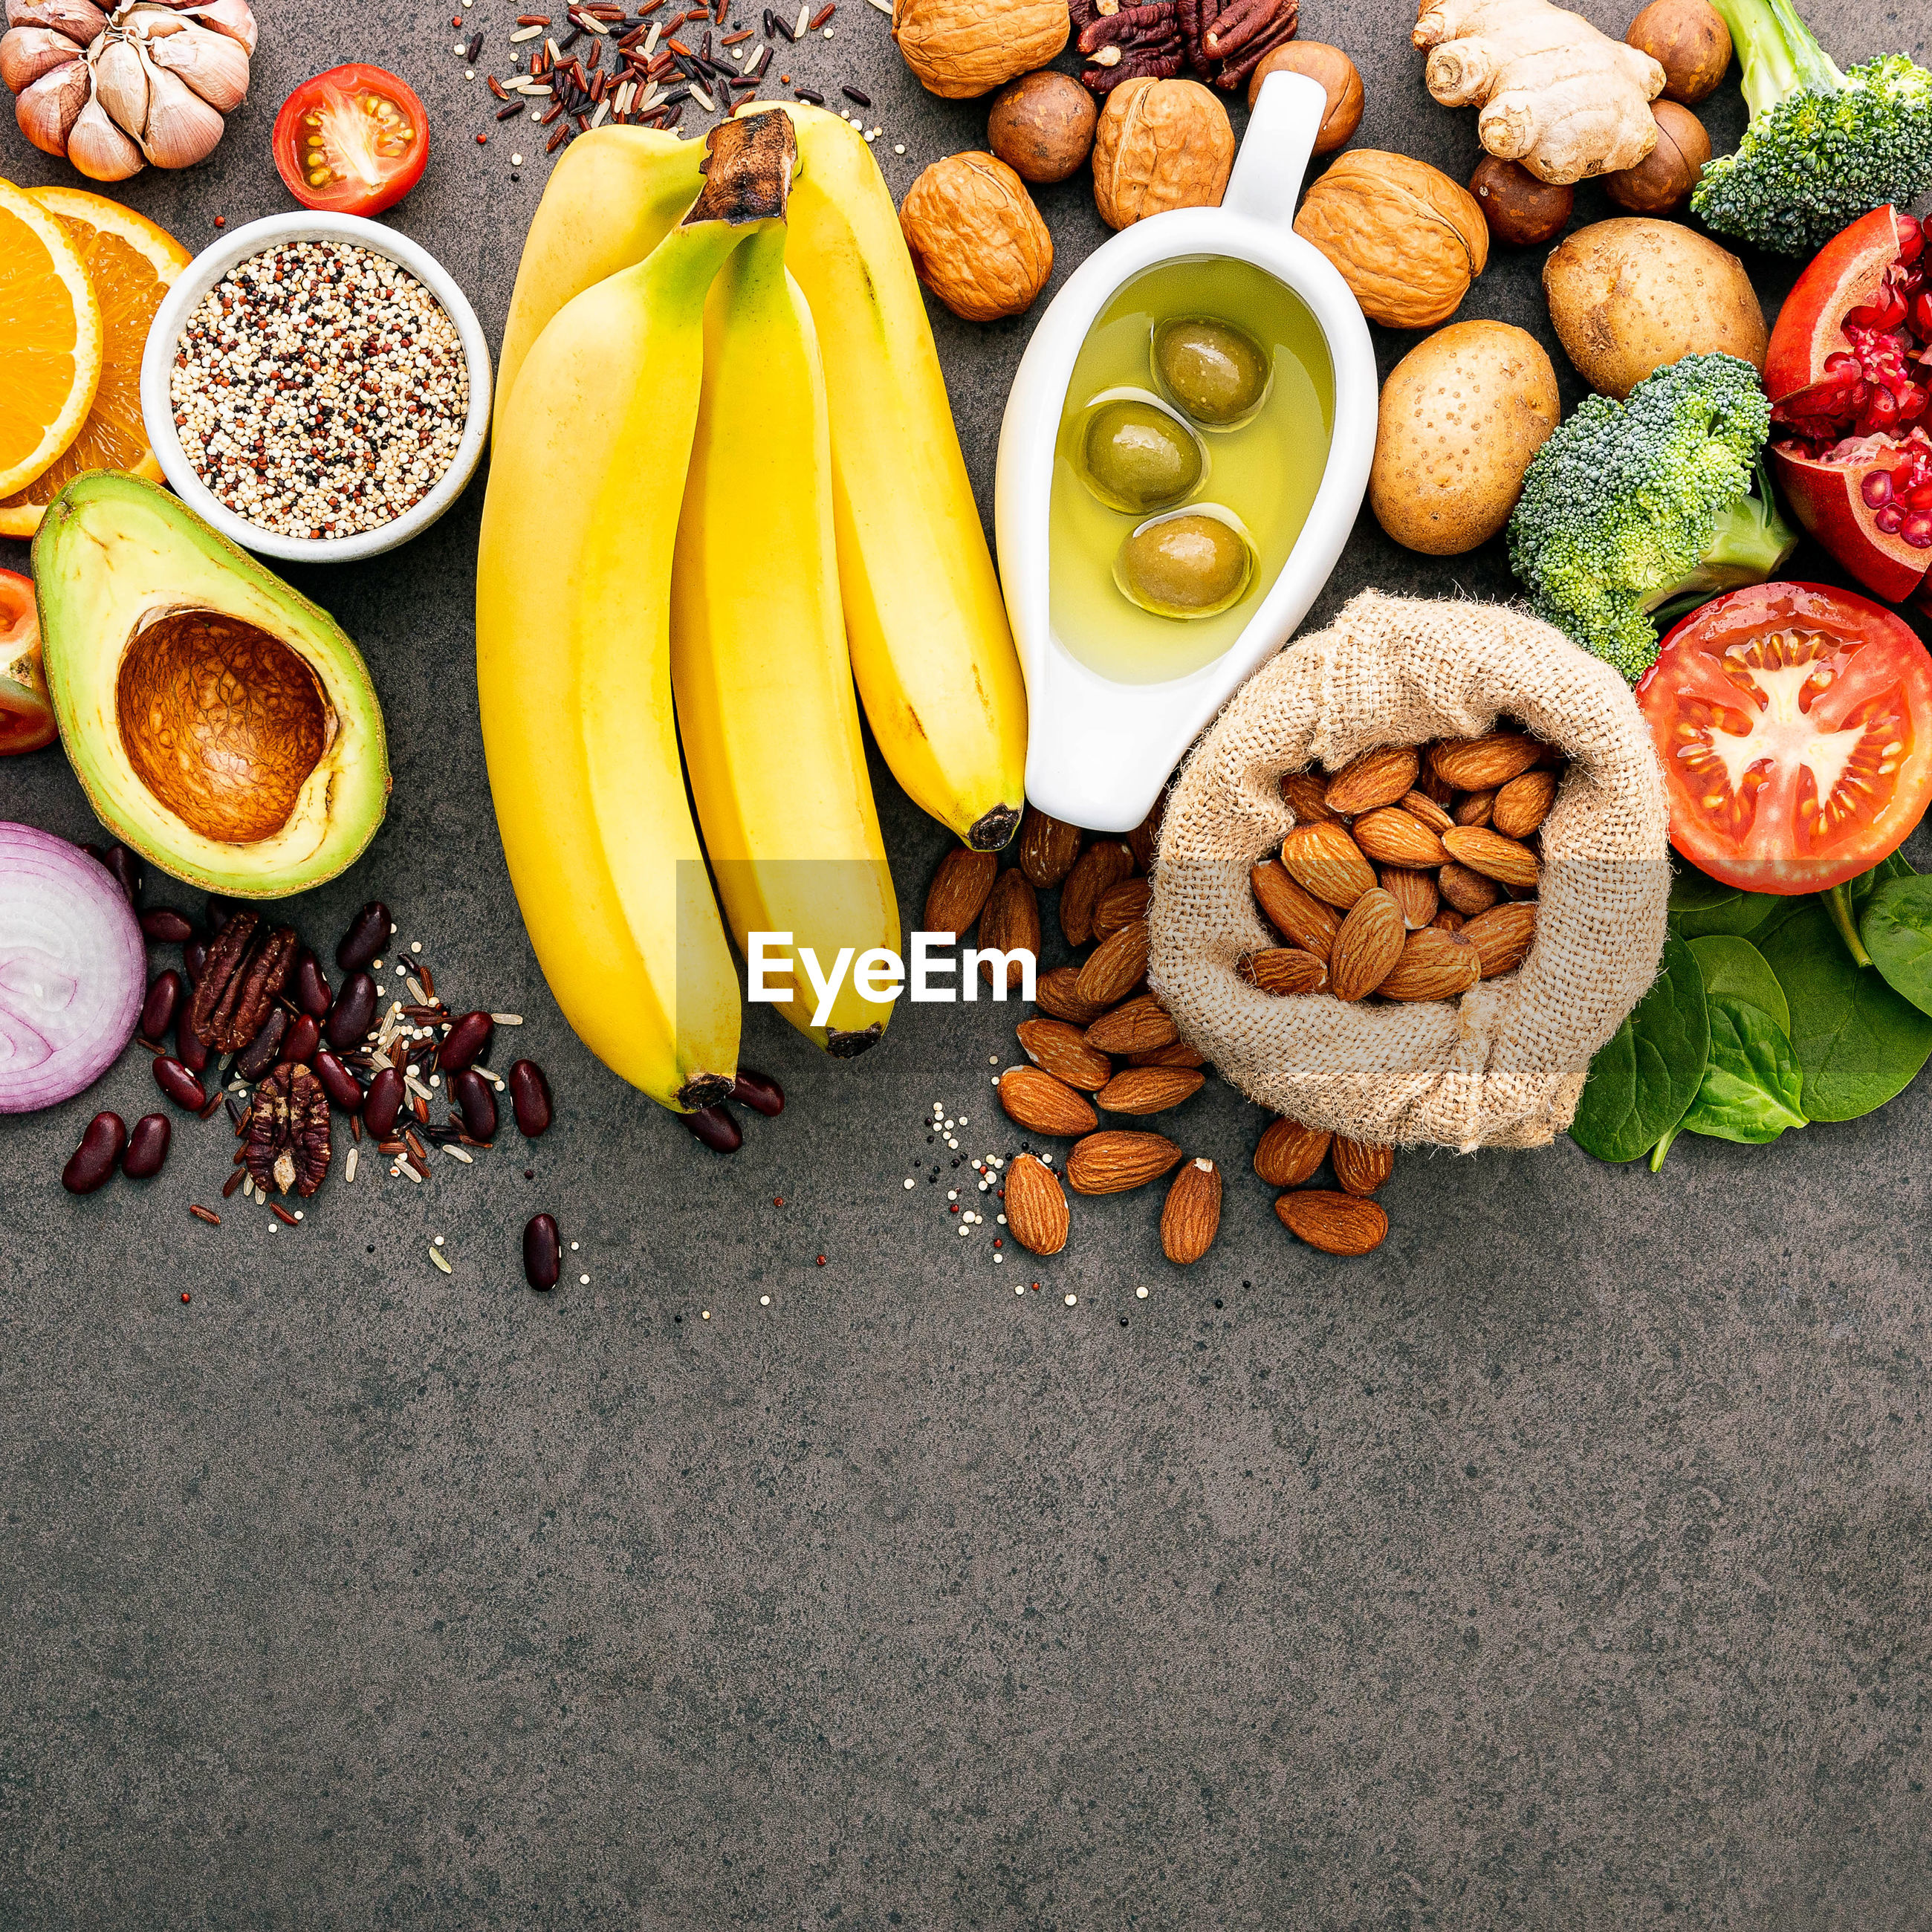 HIGH ANGLE VIEW OF FRUITS IN BOWL ON FLOOR